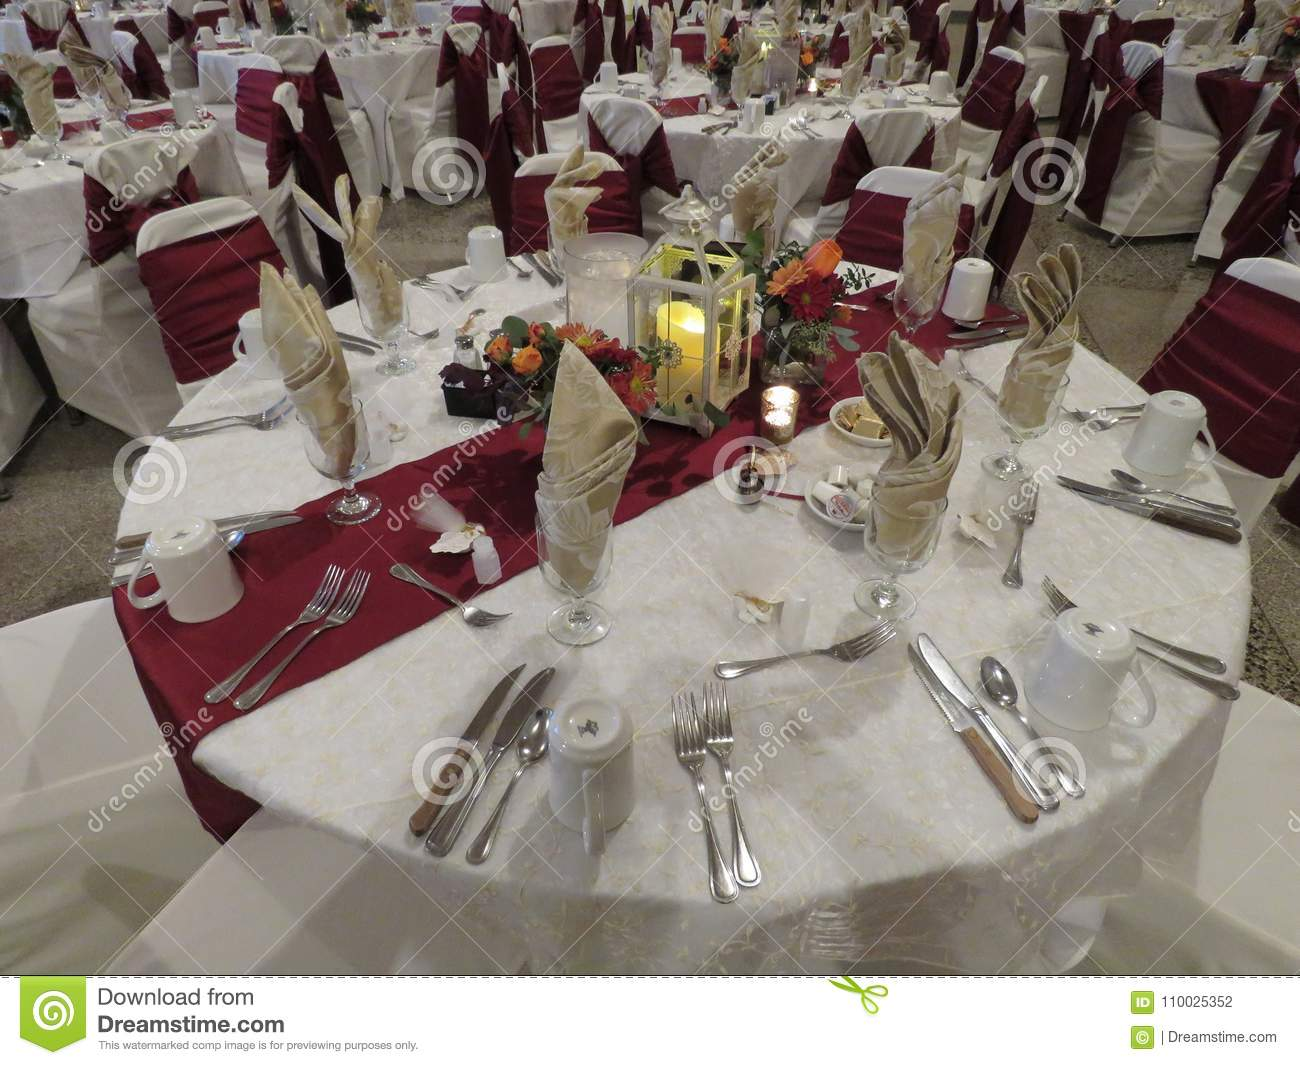 Wedding Reception Set Up With All Table Arrangements For Bridal